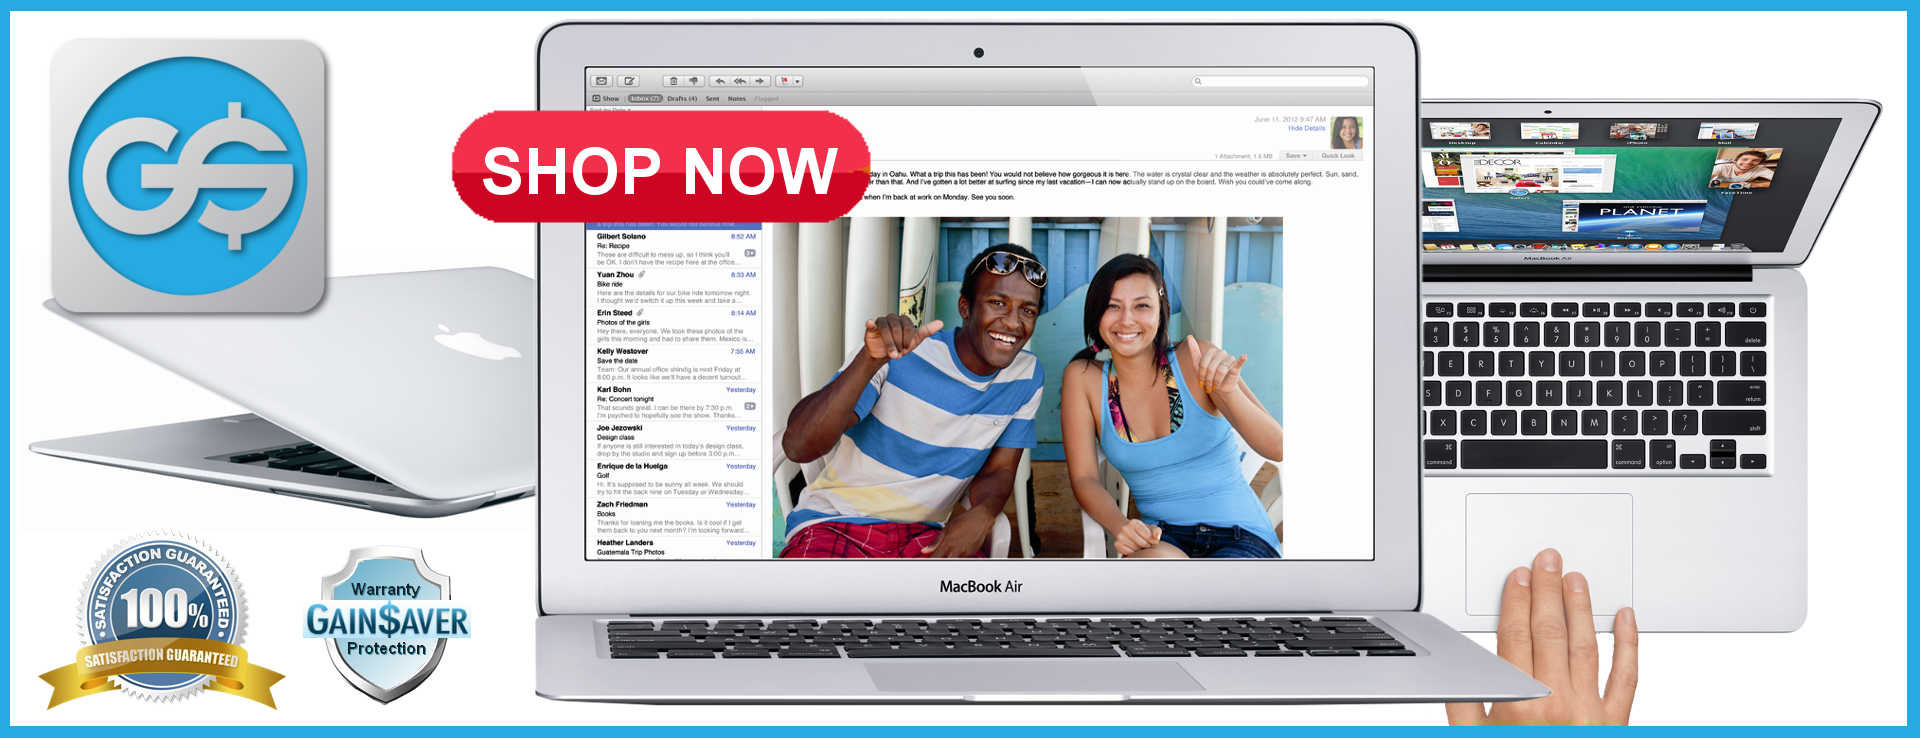 Shopping Tips for Refurbished MacBook Air Buyers